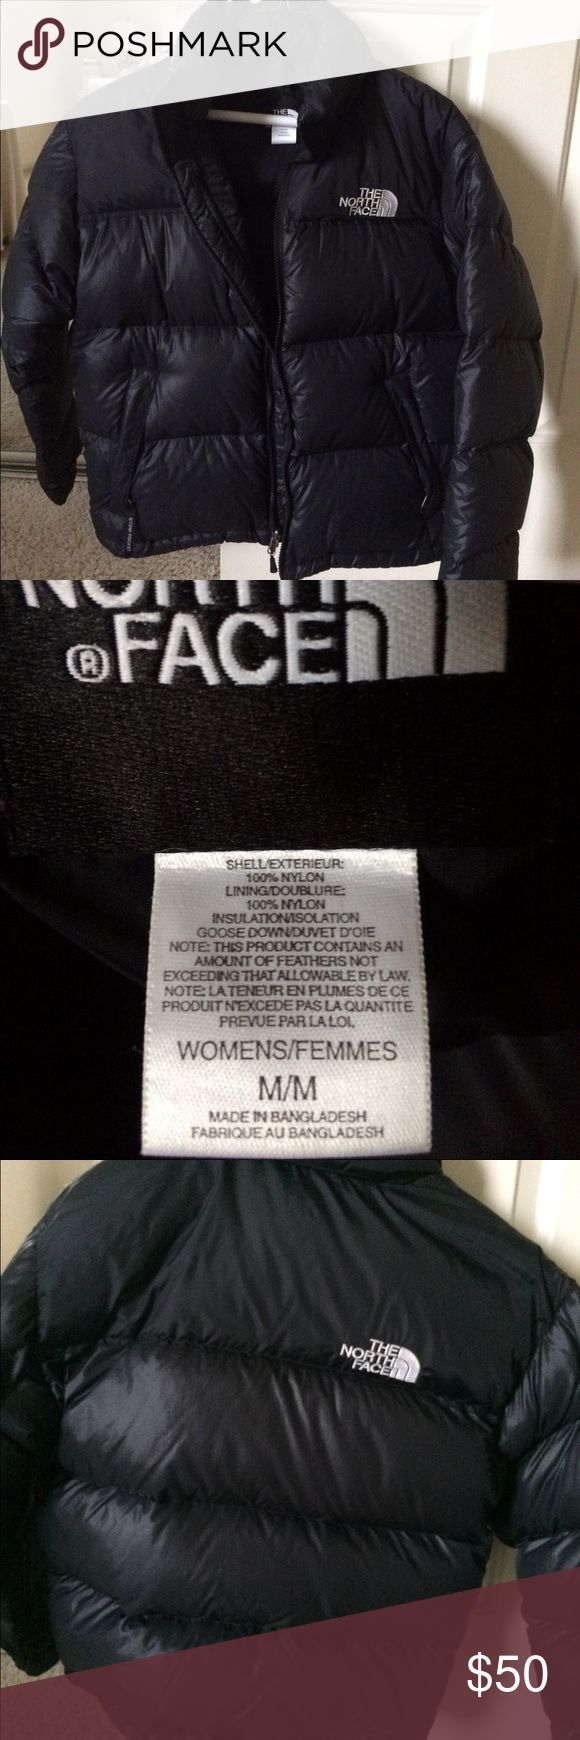 Women's Black North Face Nuptse Jacket Size M Gently used. See photo for collar - makeup foundation marks. Coat is clean after being washed. 700 fill. The North Face Jackets & Coats Puffers